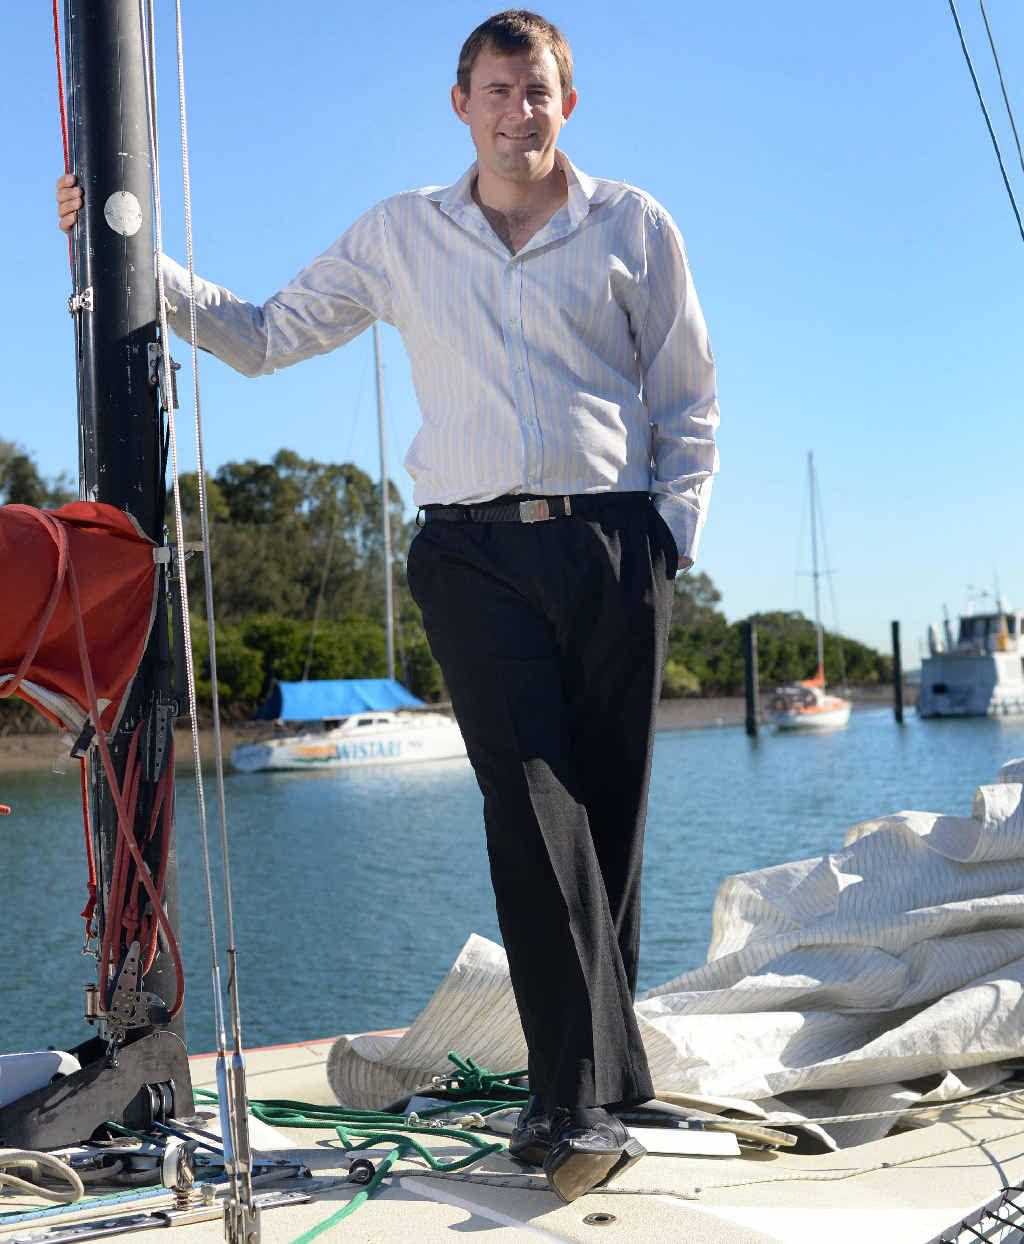 Tony Constance loves life on the water in Gladstone.